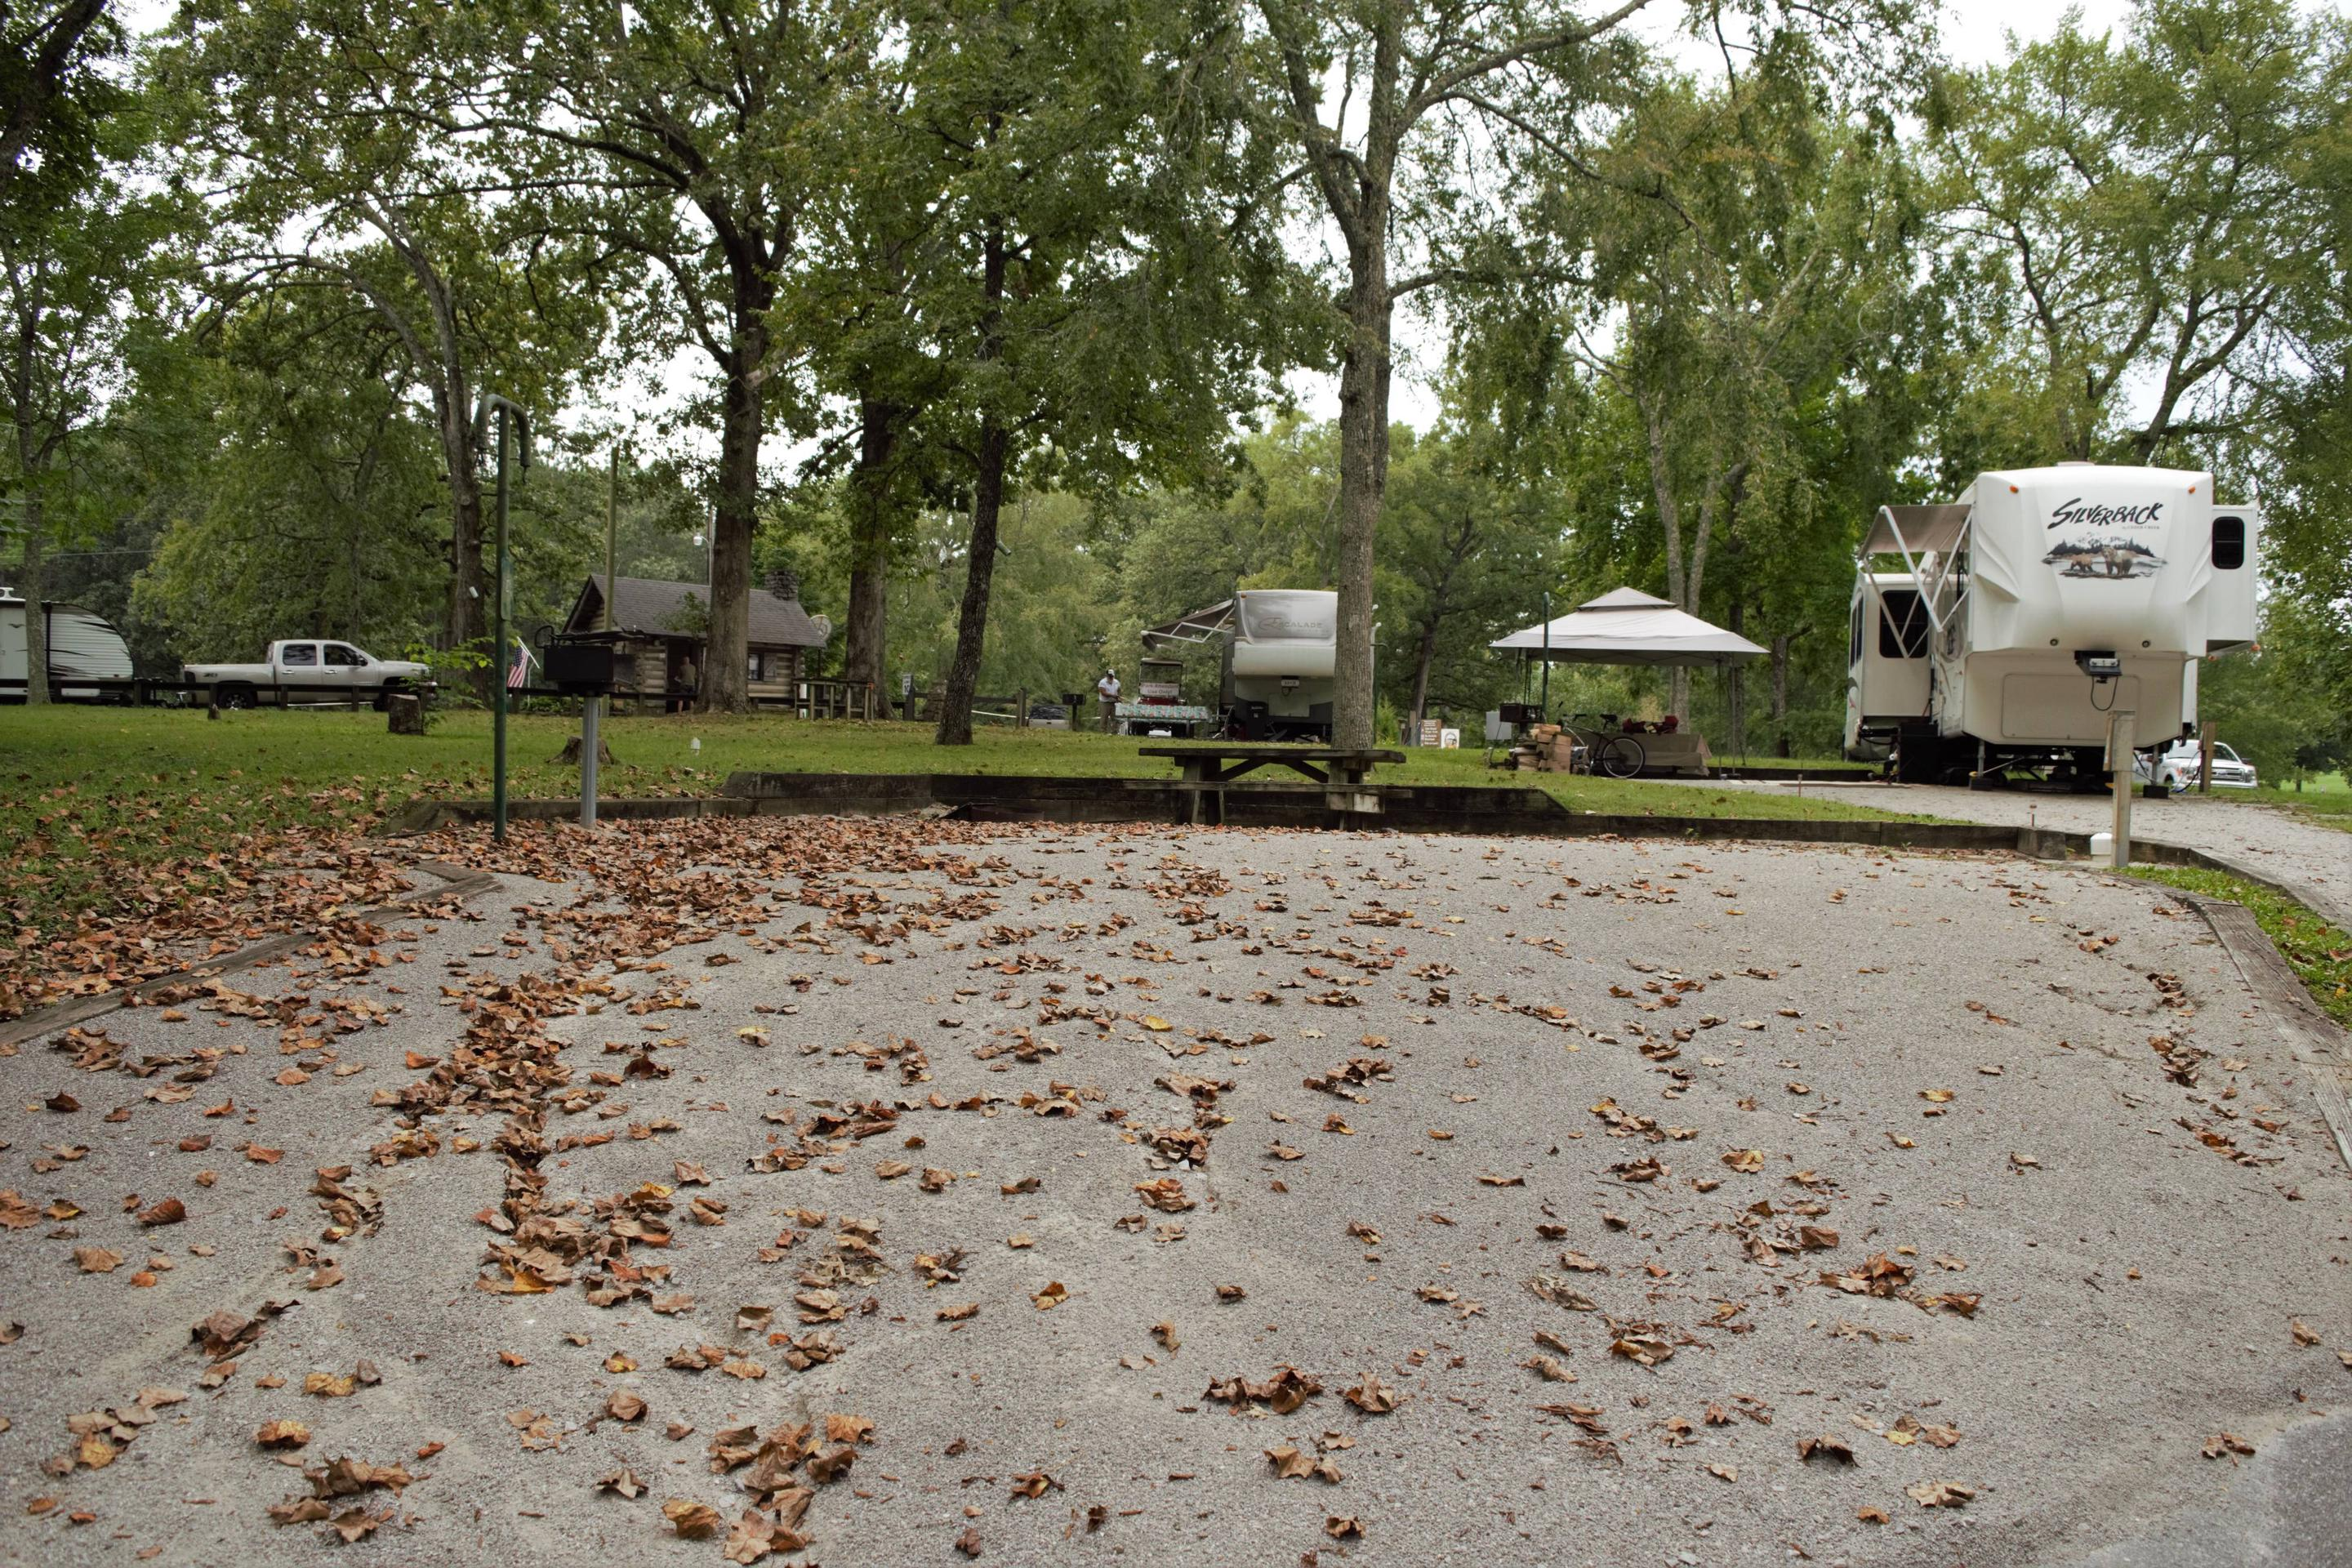 WILLOW GROVE CAMPGROUND SITE # 5